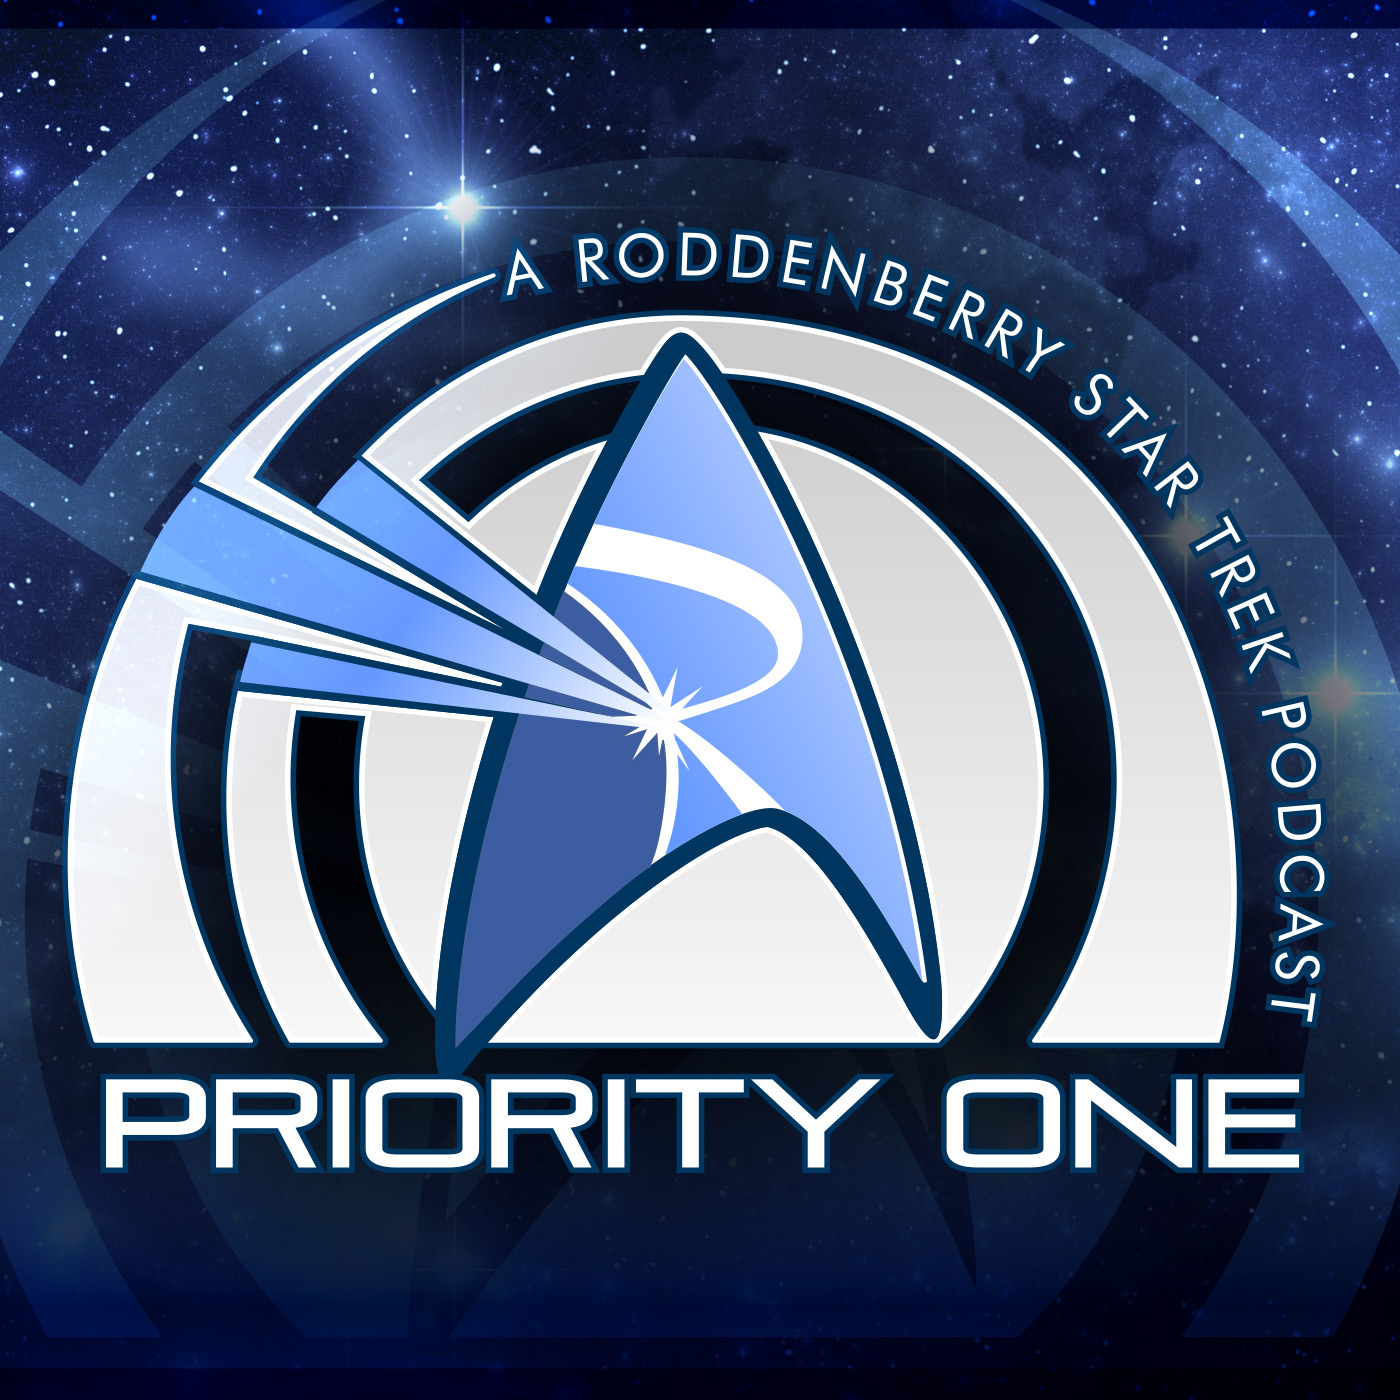 Artwork for 397 - Oh, Brother | Priority One: A Roddenberry Star Trek Podcast